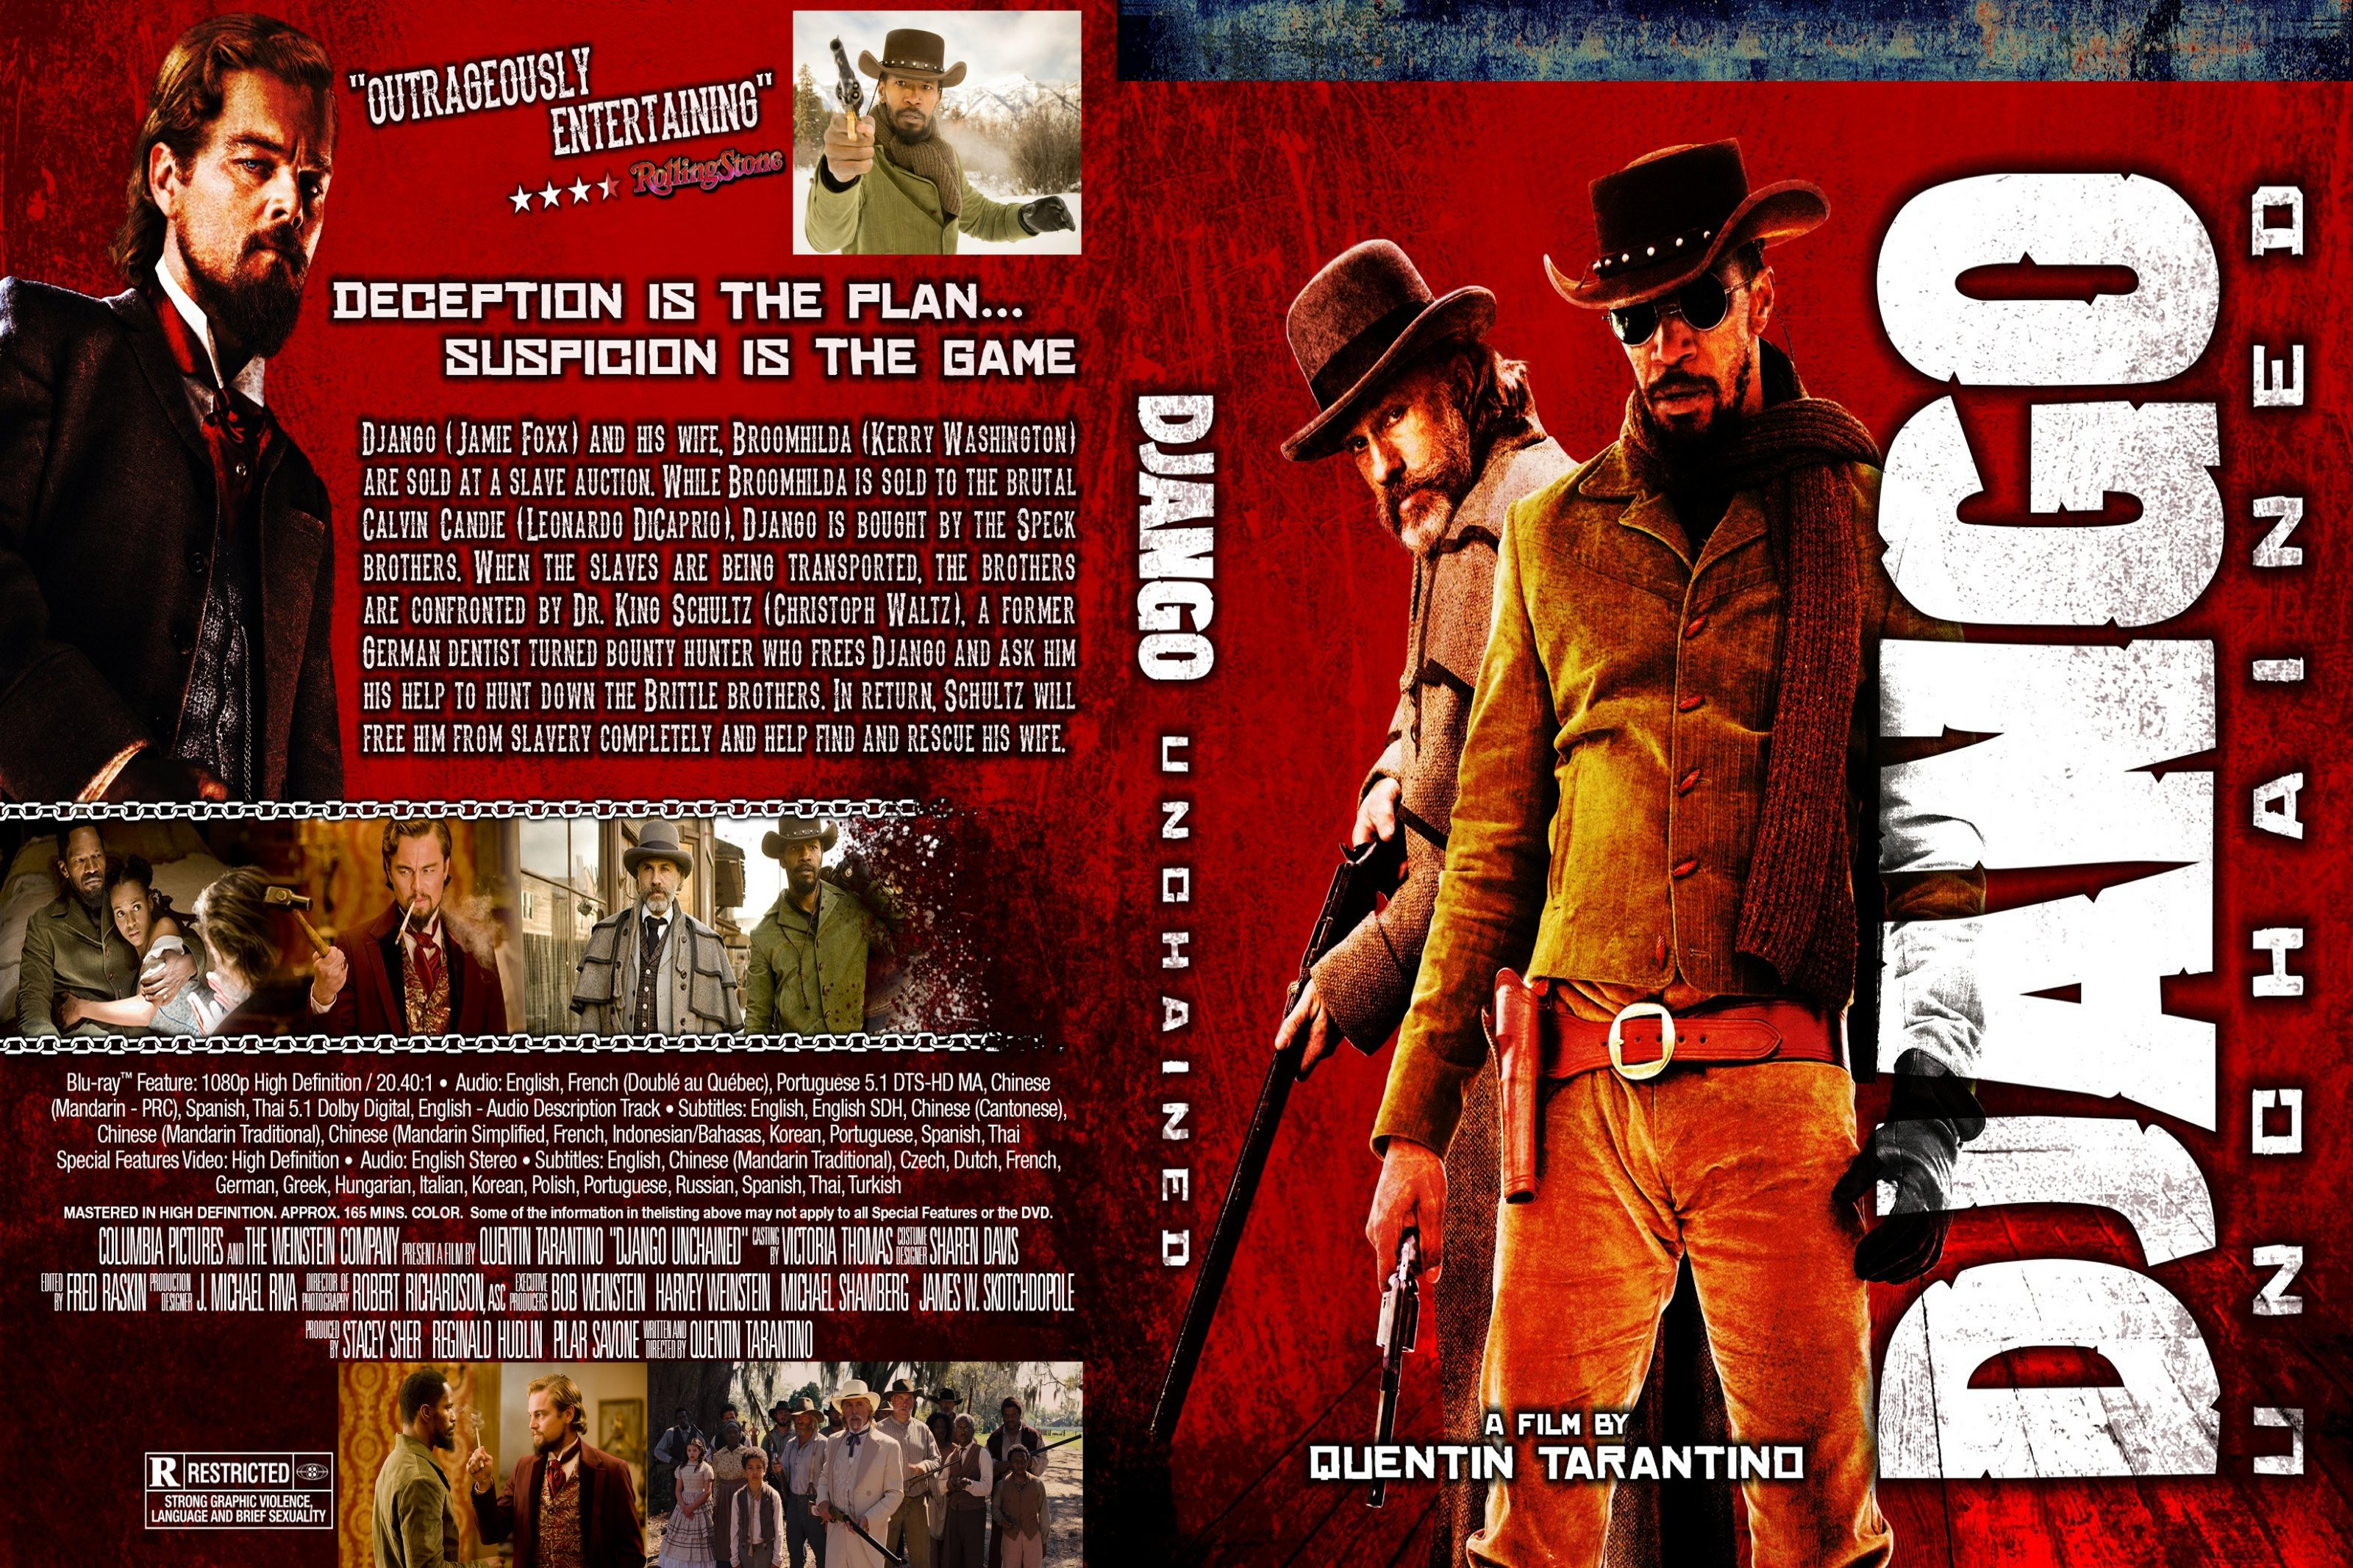 Django Unchained A Film By Quentin Tarantino With Jamie Foxx Christoph Waltz Leonardo Dicaprio Kerry Washington Samuel L Jackson Private Collection 2 Items Minimum For International Orders From Usa Only 4 00